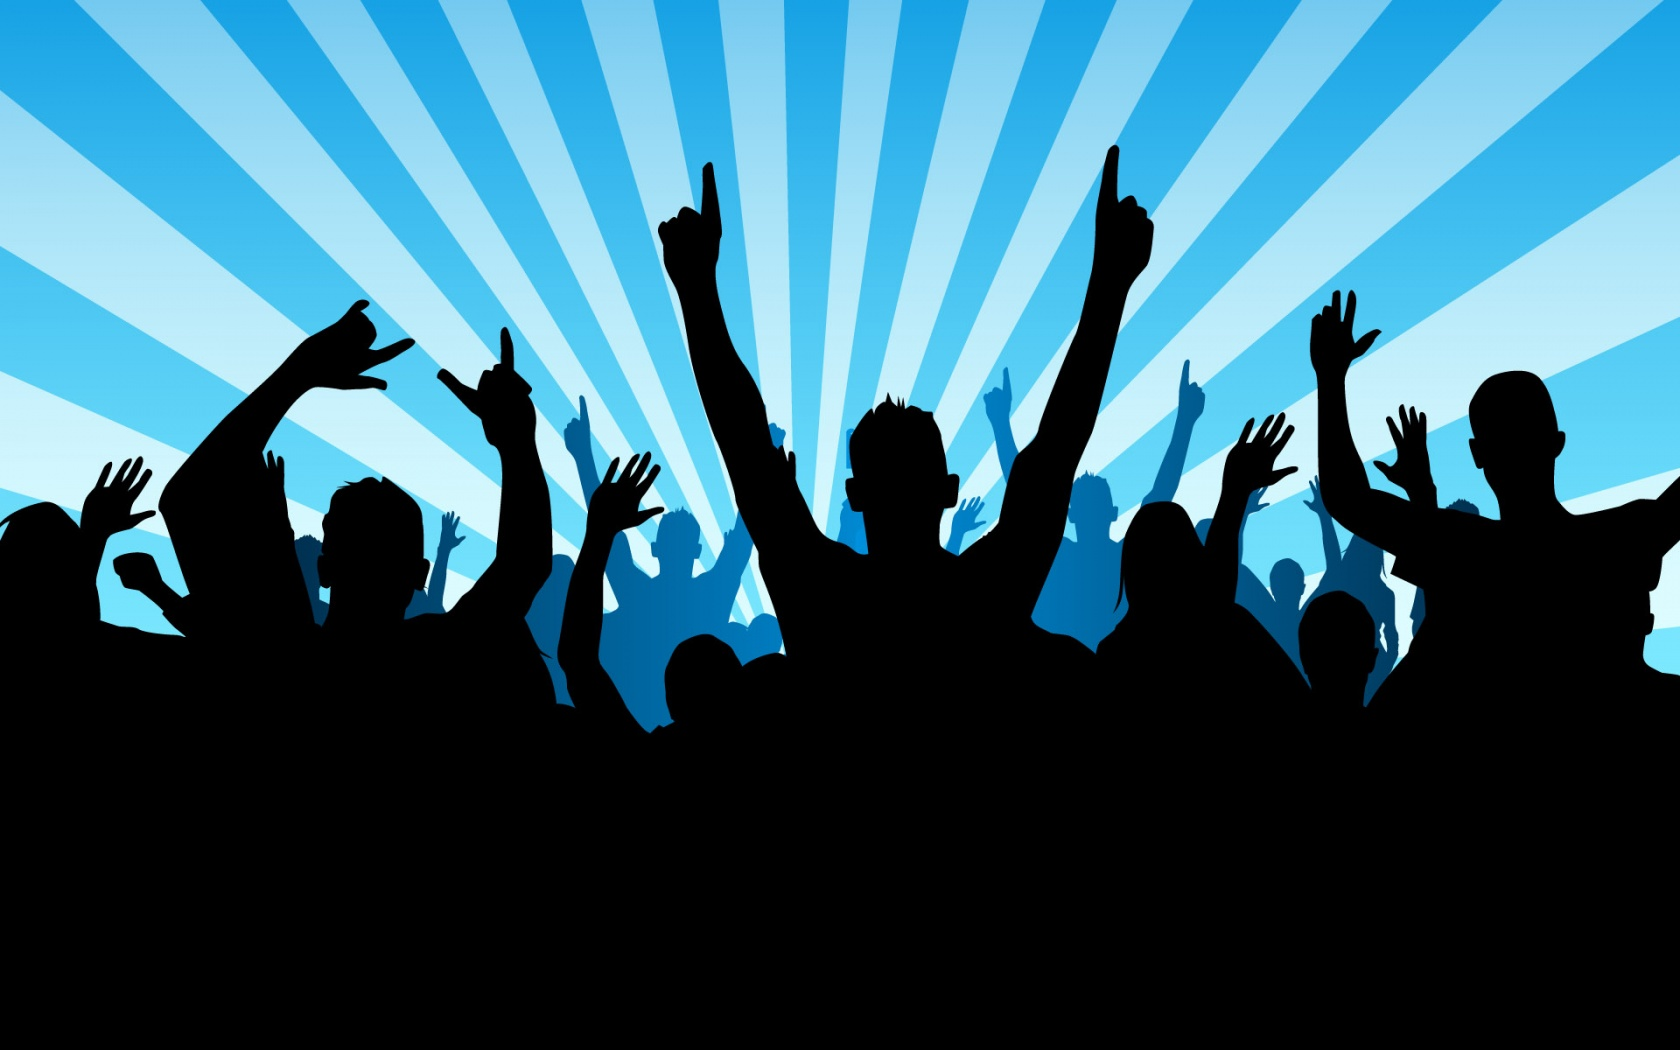 Enjoying Party Vector Wallpapers In Jpg Format For Free